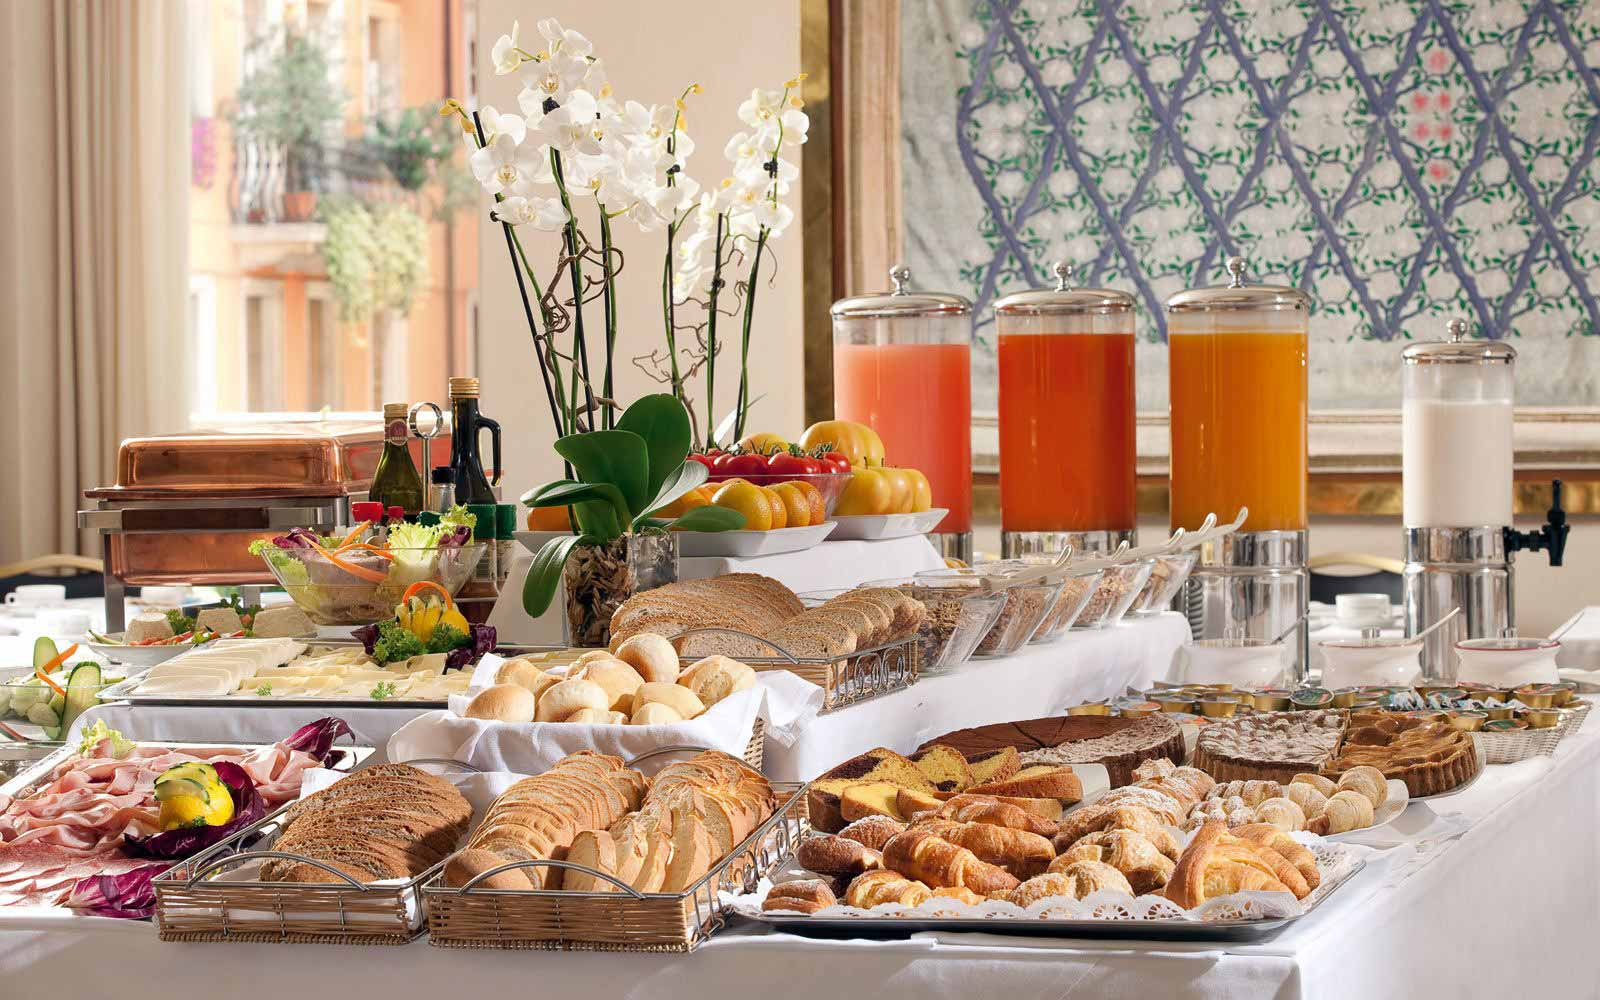 Breakfast buffet at Hotel Accademia